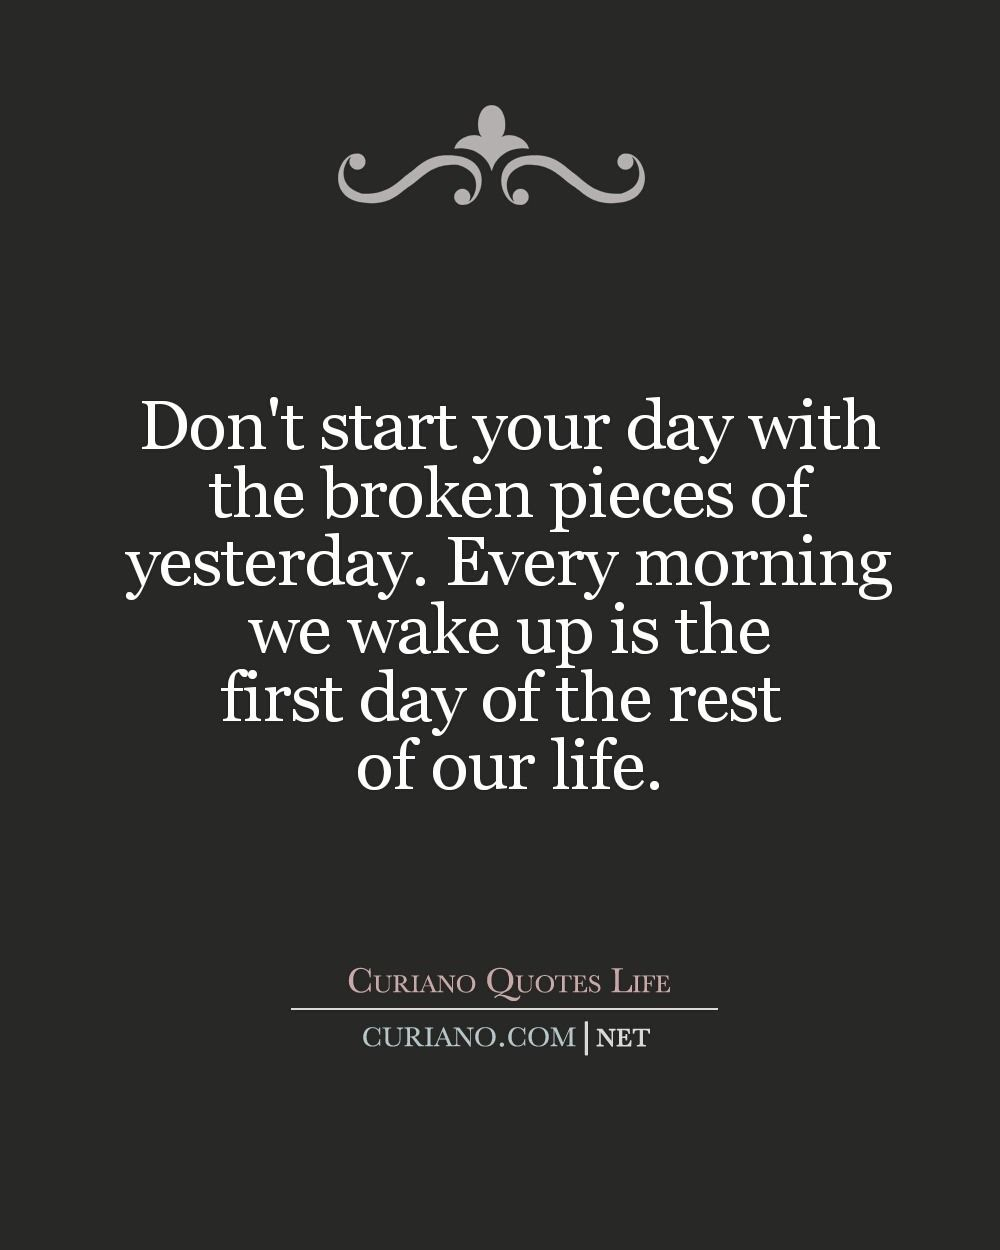 Good Quotes About Life This Blog Curiano Quotes Life Shows Quotes Best Life Quote